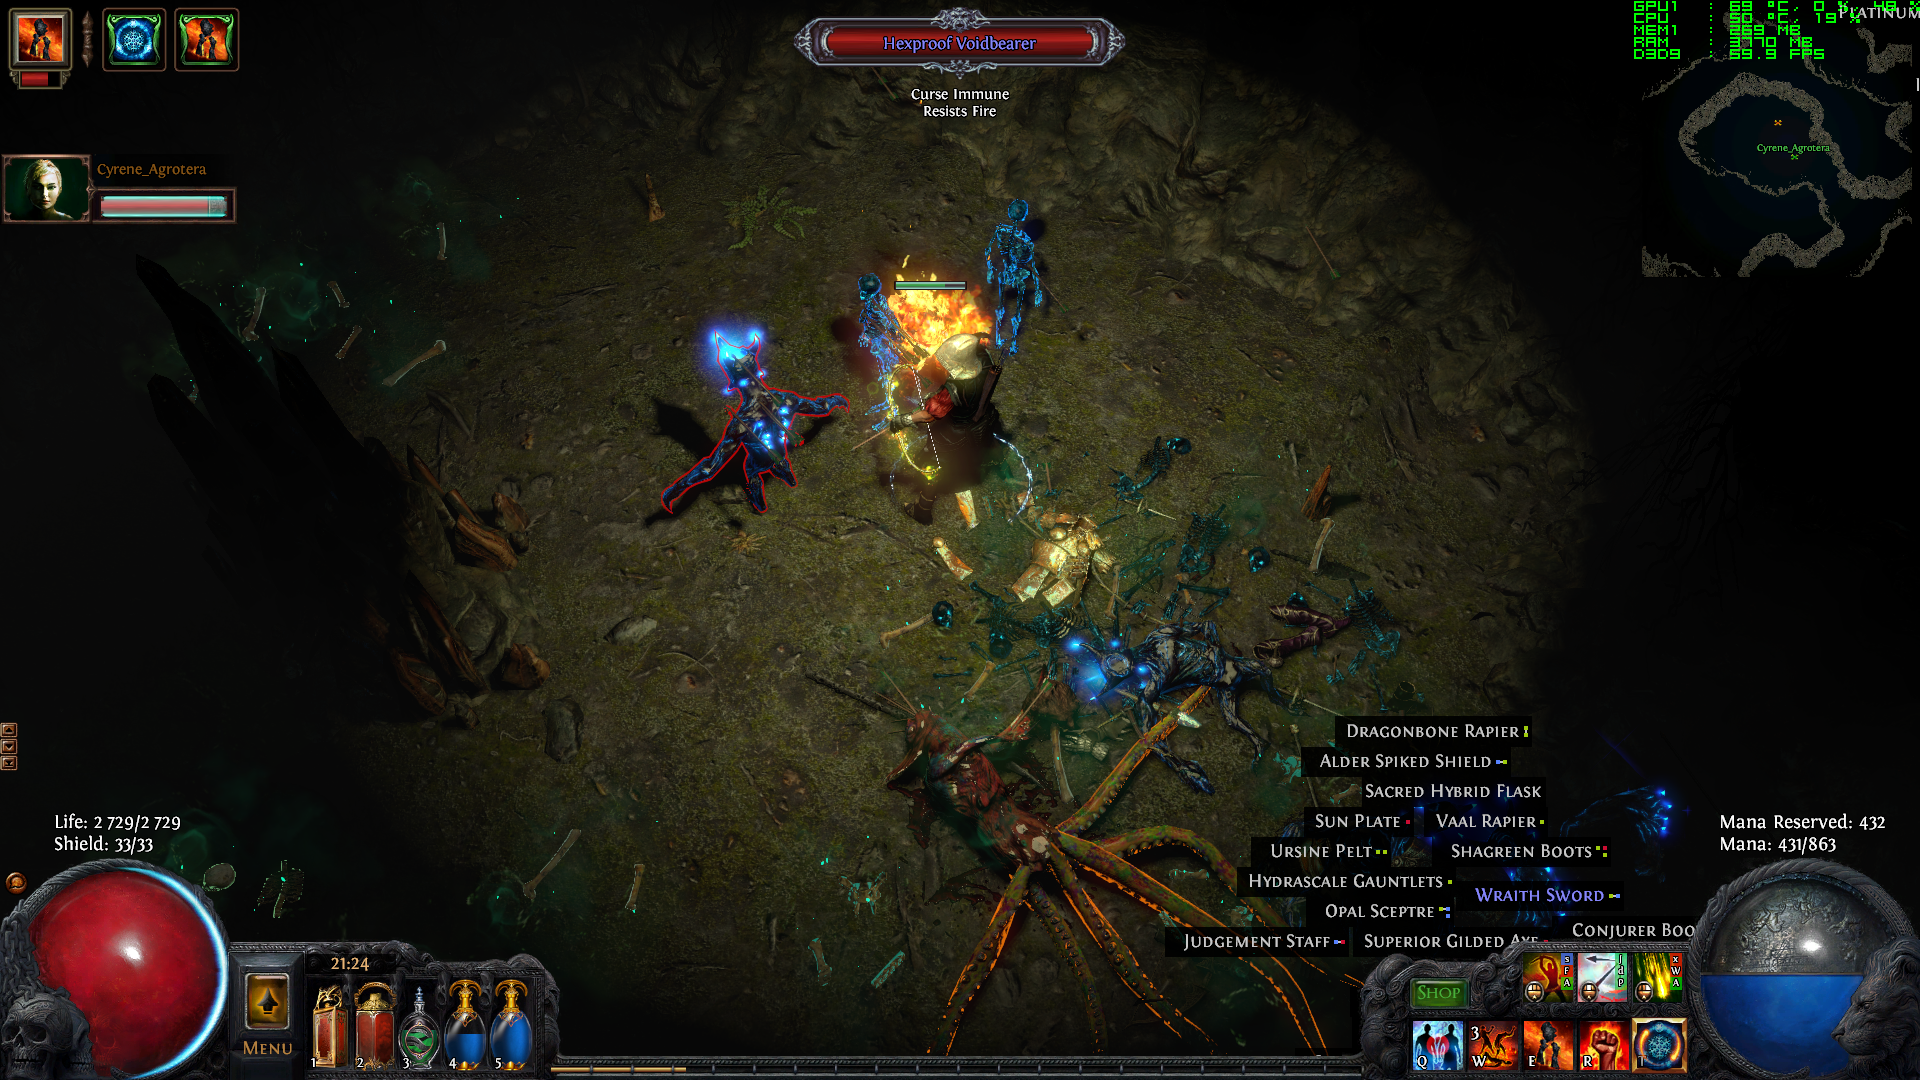 Forum - Bug Reports - Frozen unkillable monsters - Path of Exile